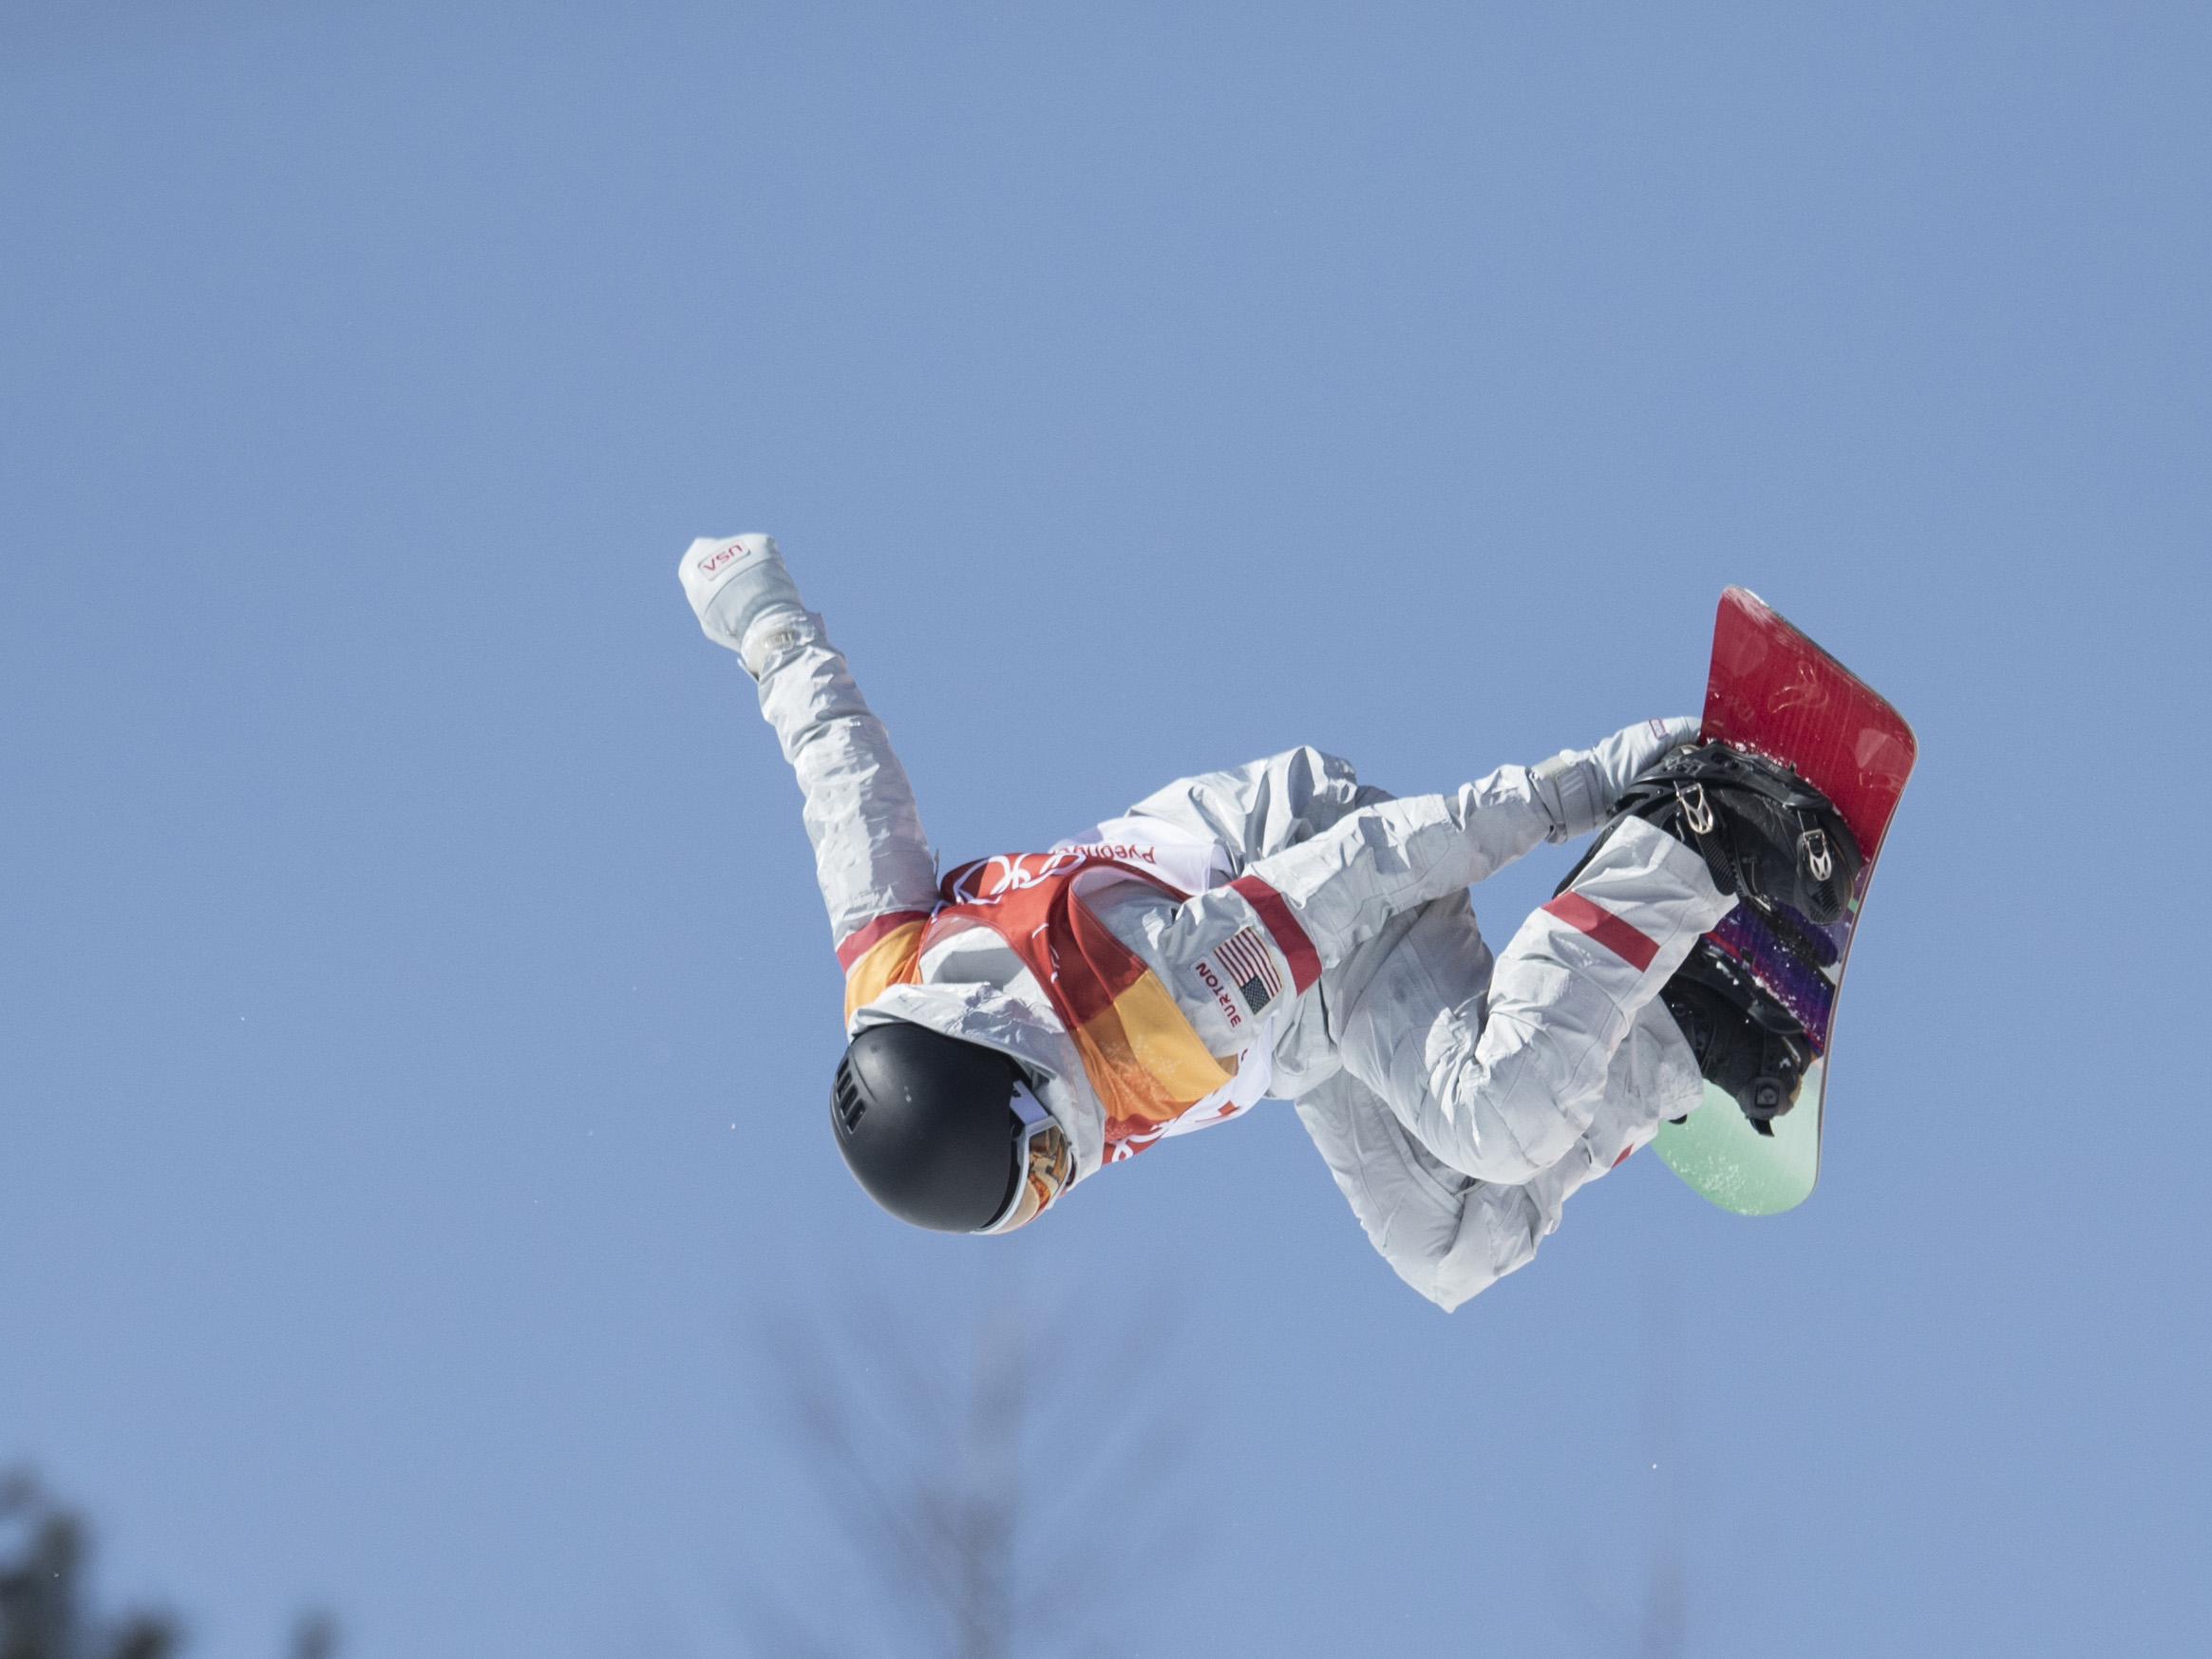 Snowboard – Winter Olympics Day 4